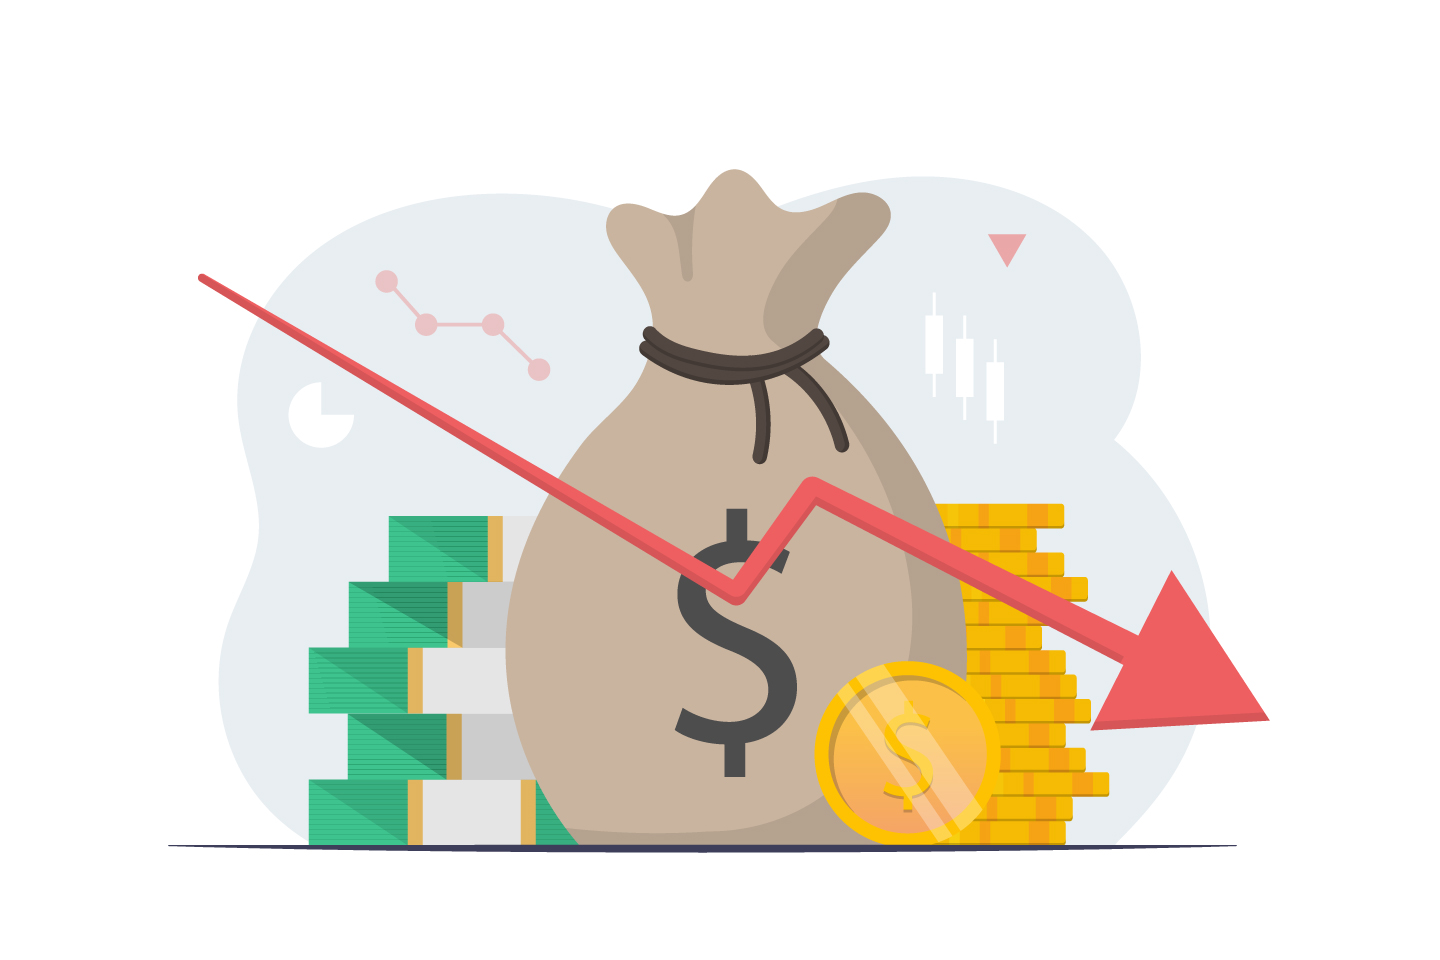 Stock and Currency Market Crash Down Illustration